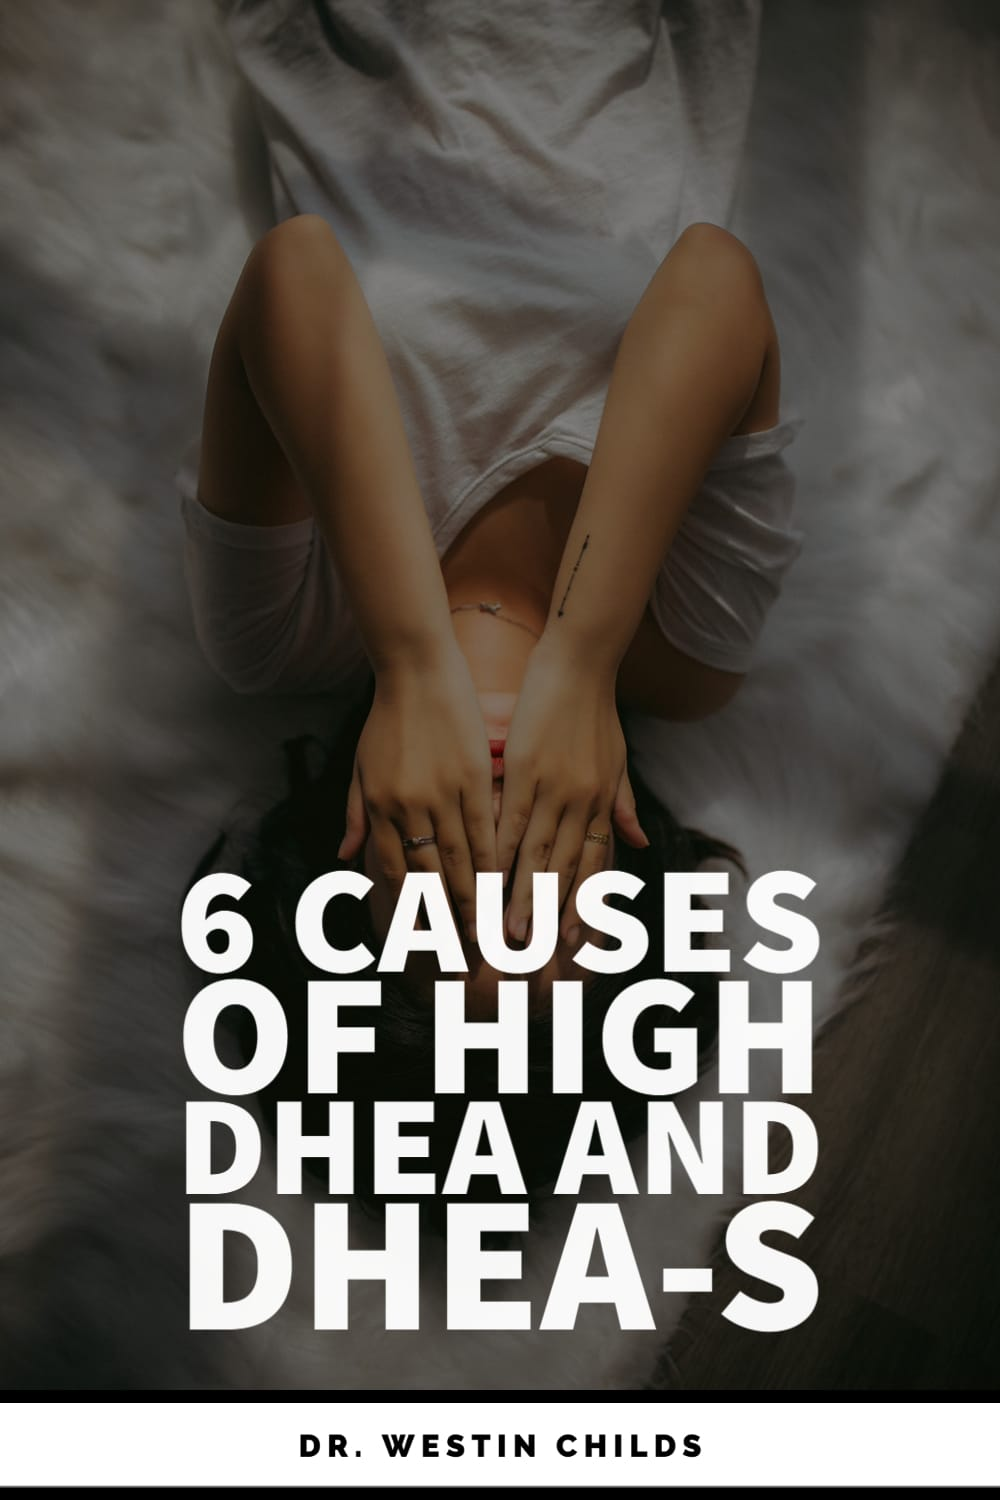 6 causes of high DHEA in women and what it means